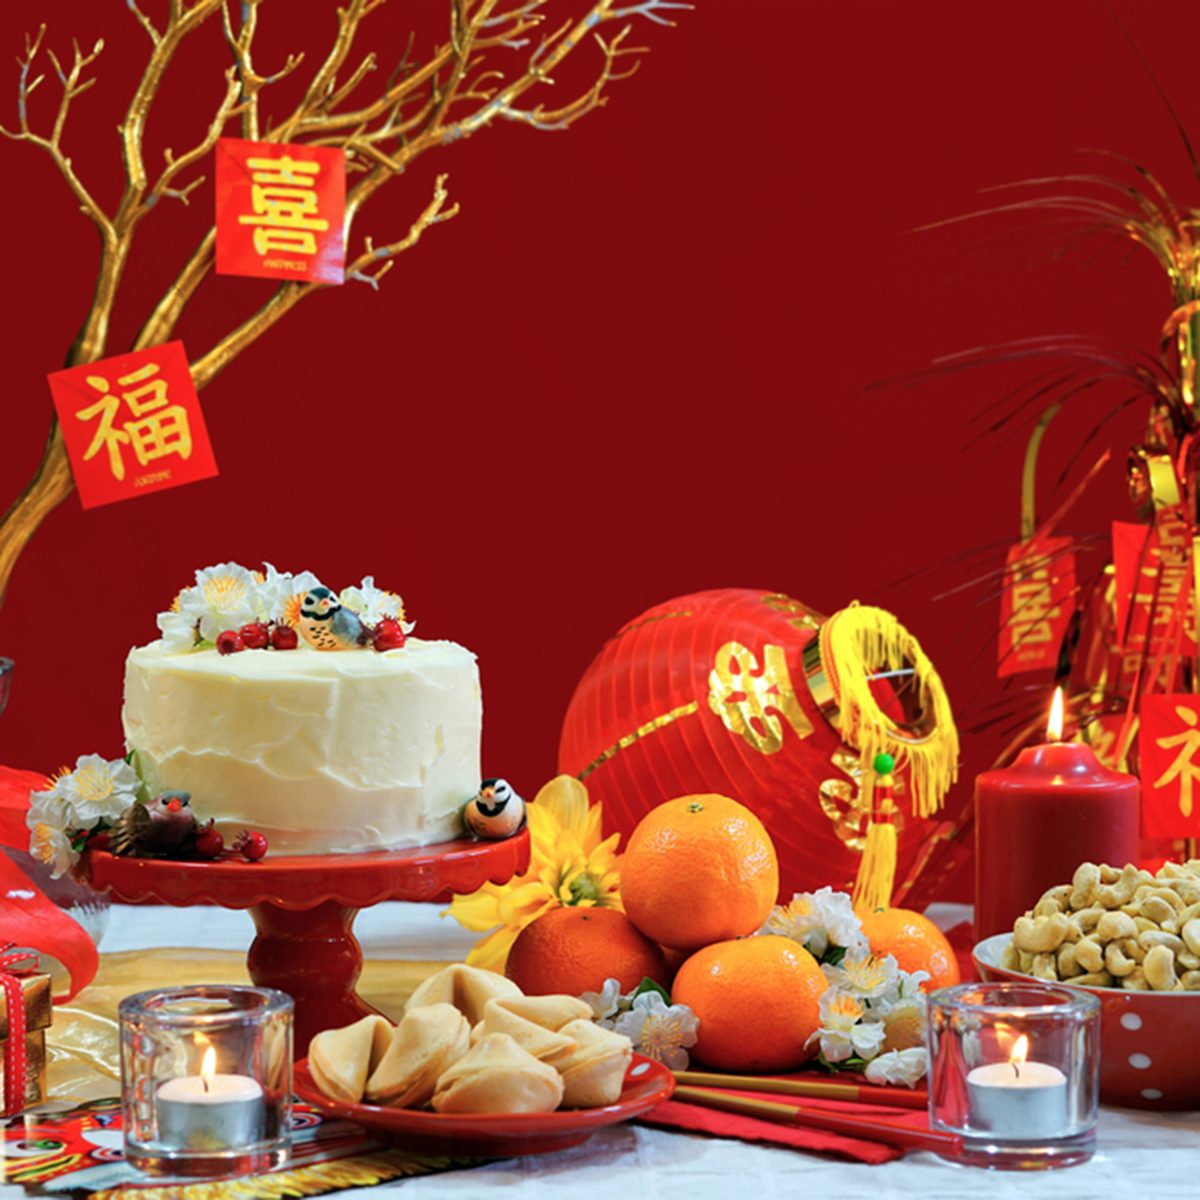 Chinese New Year Party Table In Red And Gold Theme With Food Traditional Decorations